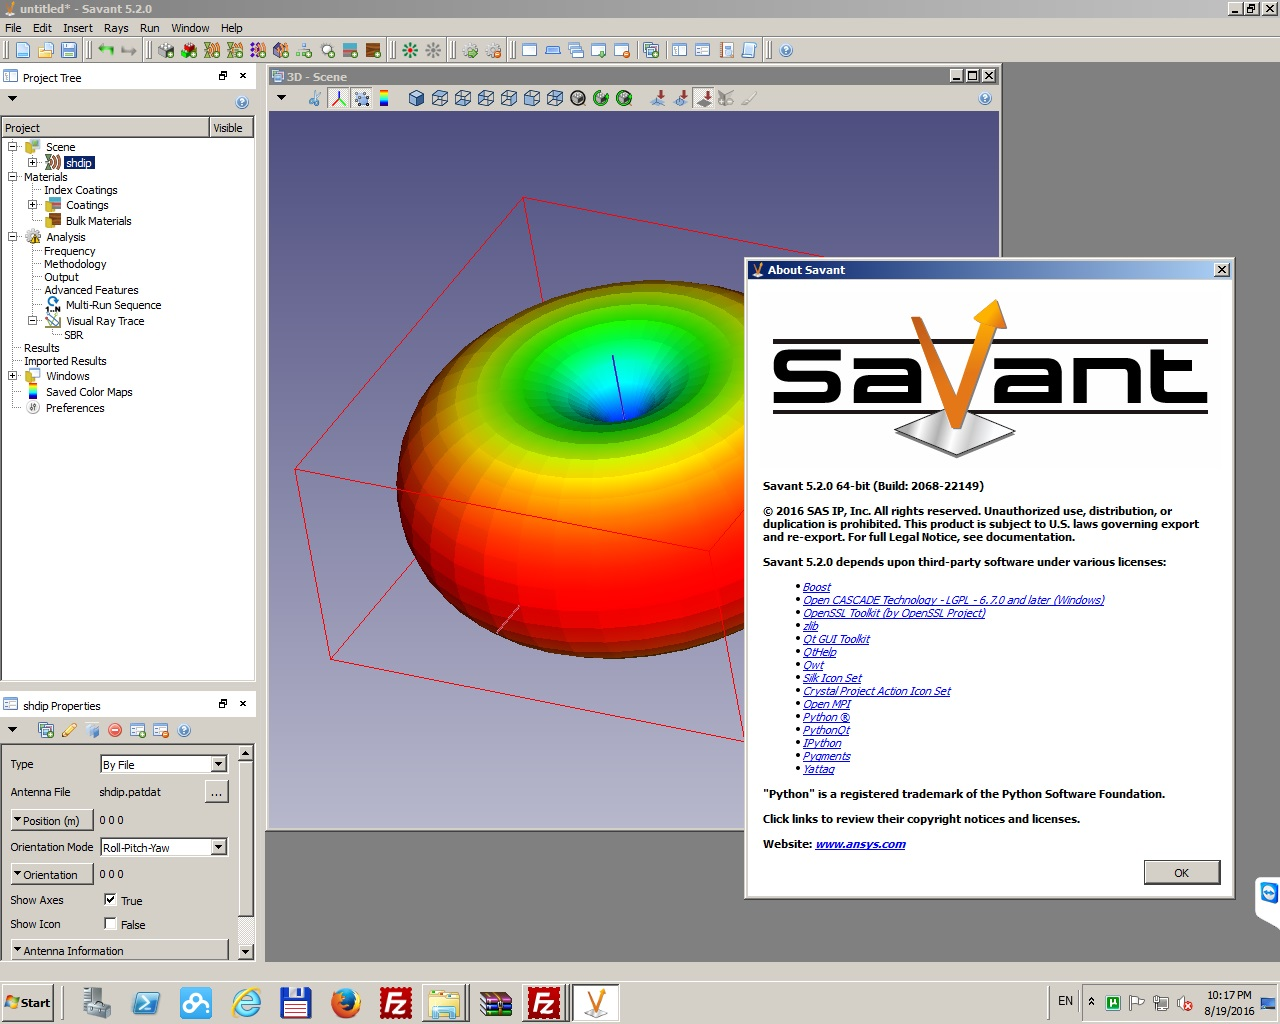 Working with Savant 5.2 ANSYS Electromagnetics Suite 17.2 Win64